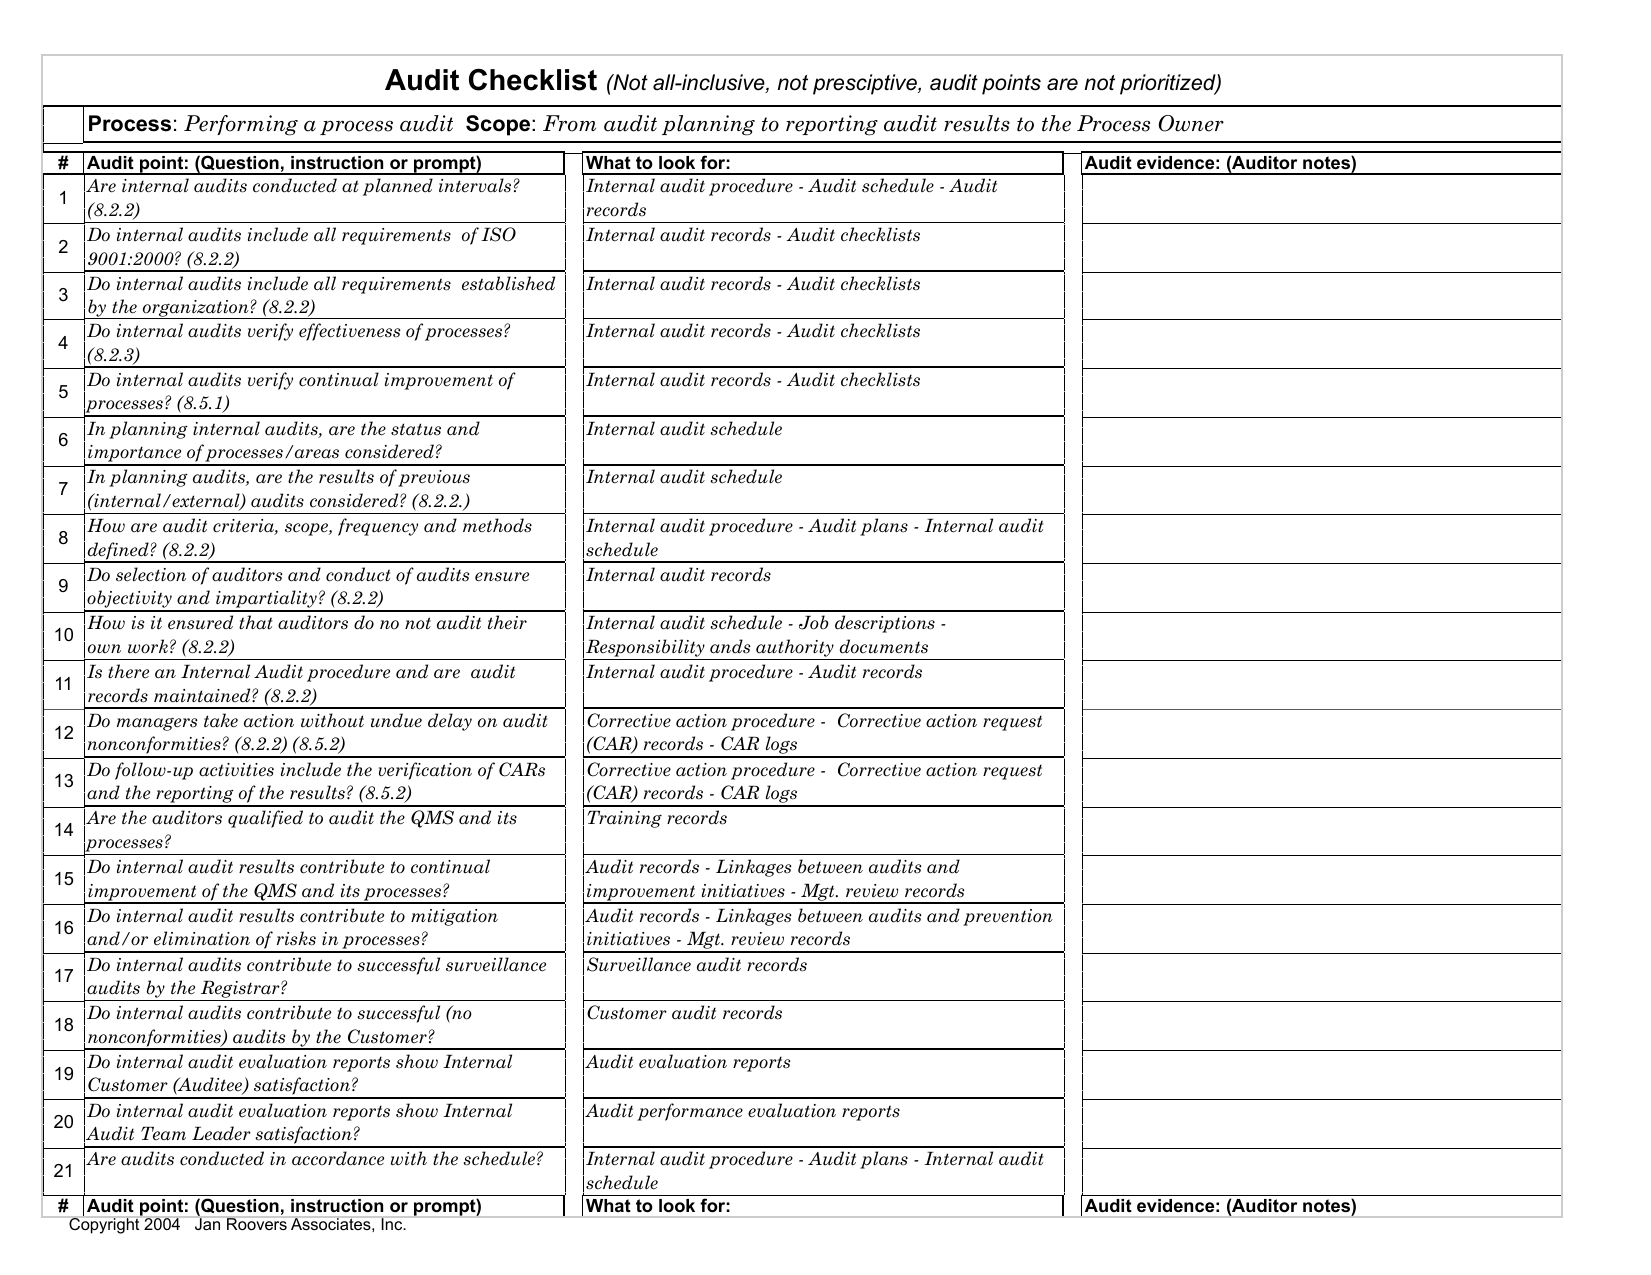 internal audit checklist template excel Download Internal Audit Checklist Template | Excel | PDF | RTF ...